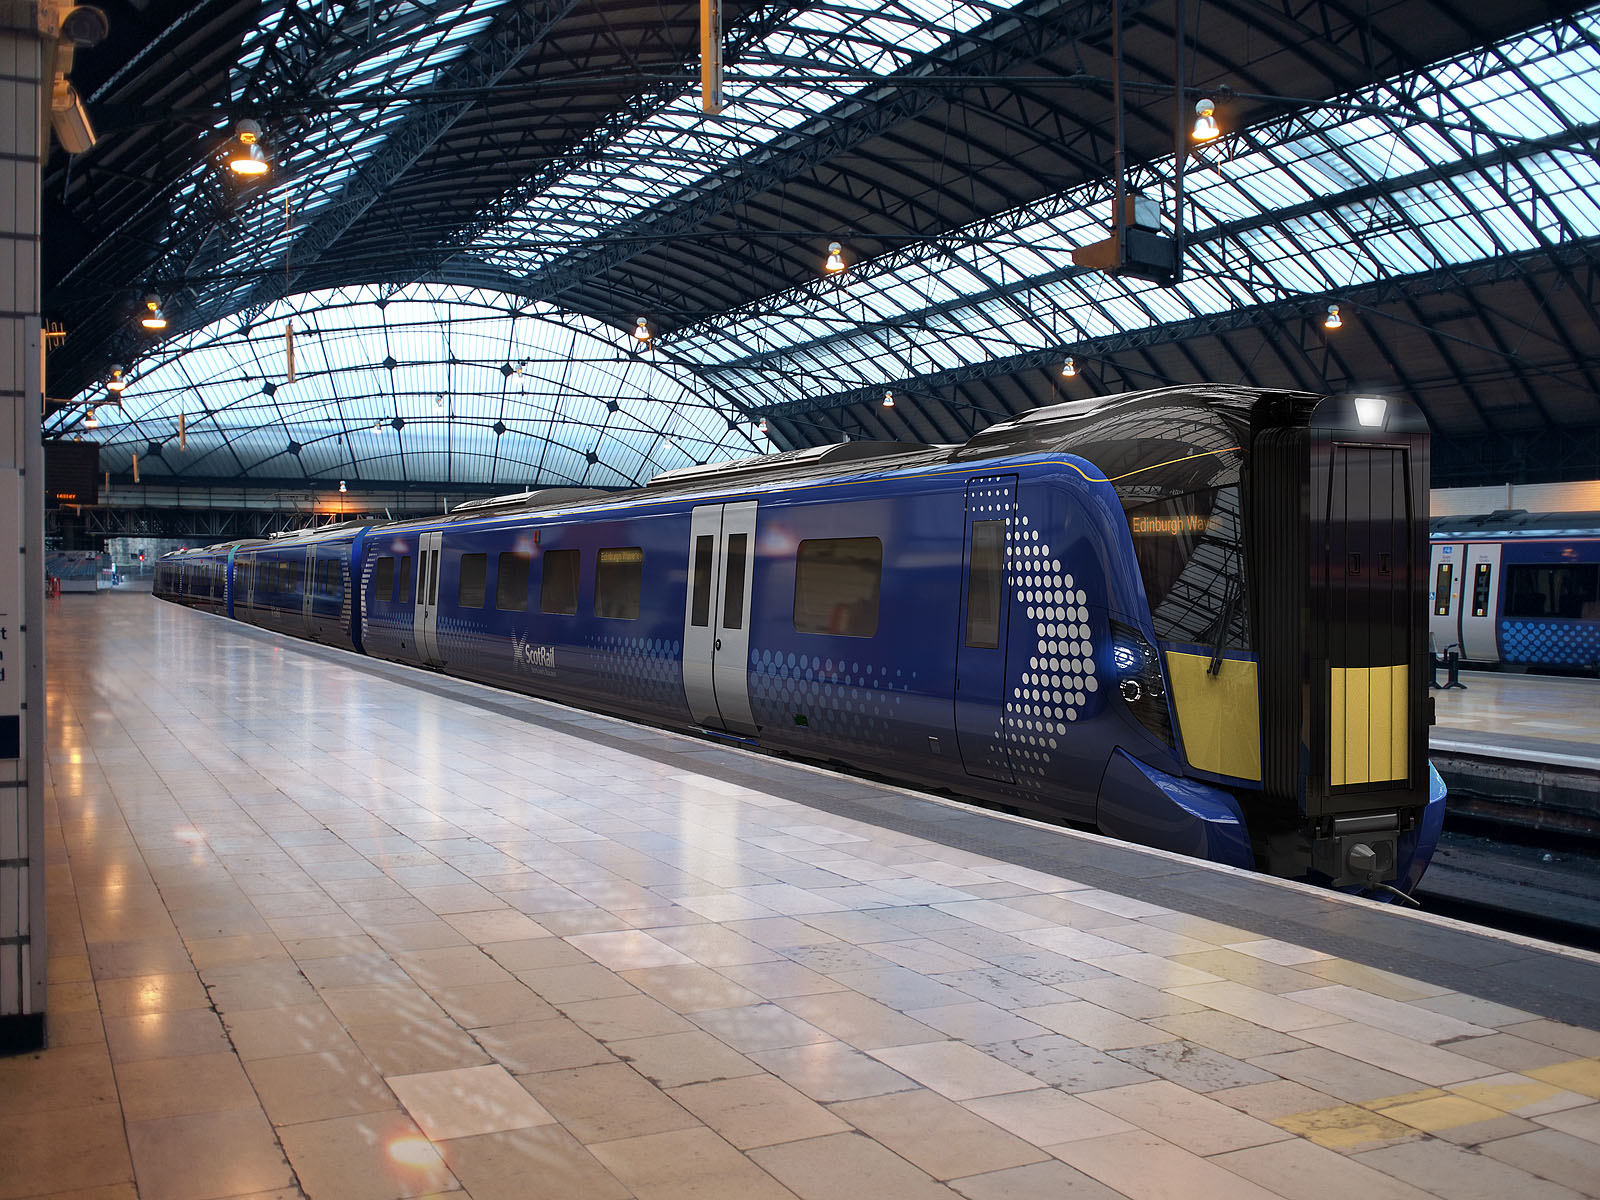 [UK] Abellio presents the new AT200 trains for its ScotRail franchise